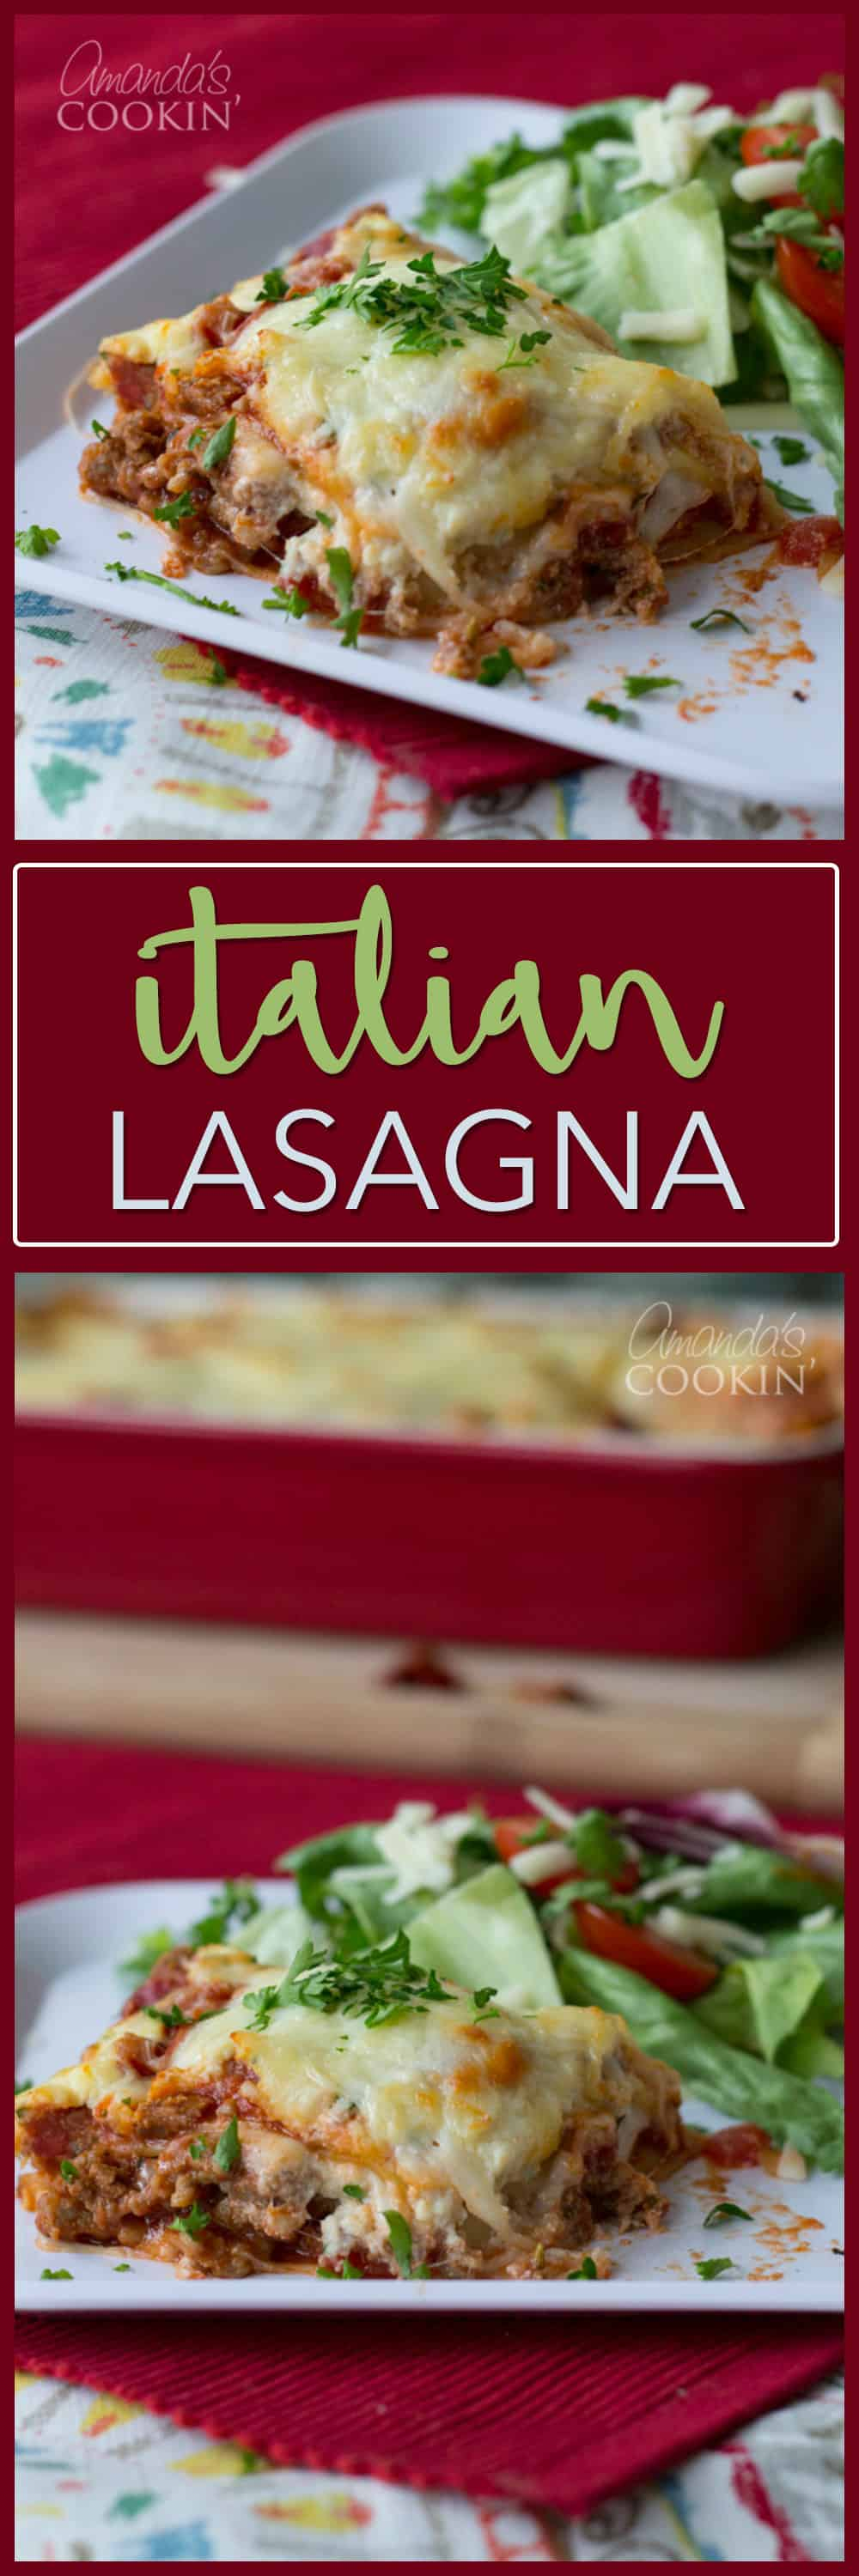 This Italian Lasagna comes from the back of the Creamette lasagna noodle box from years gone by. I've been making this lasagna recipe for over 20 years!